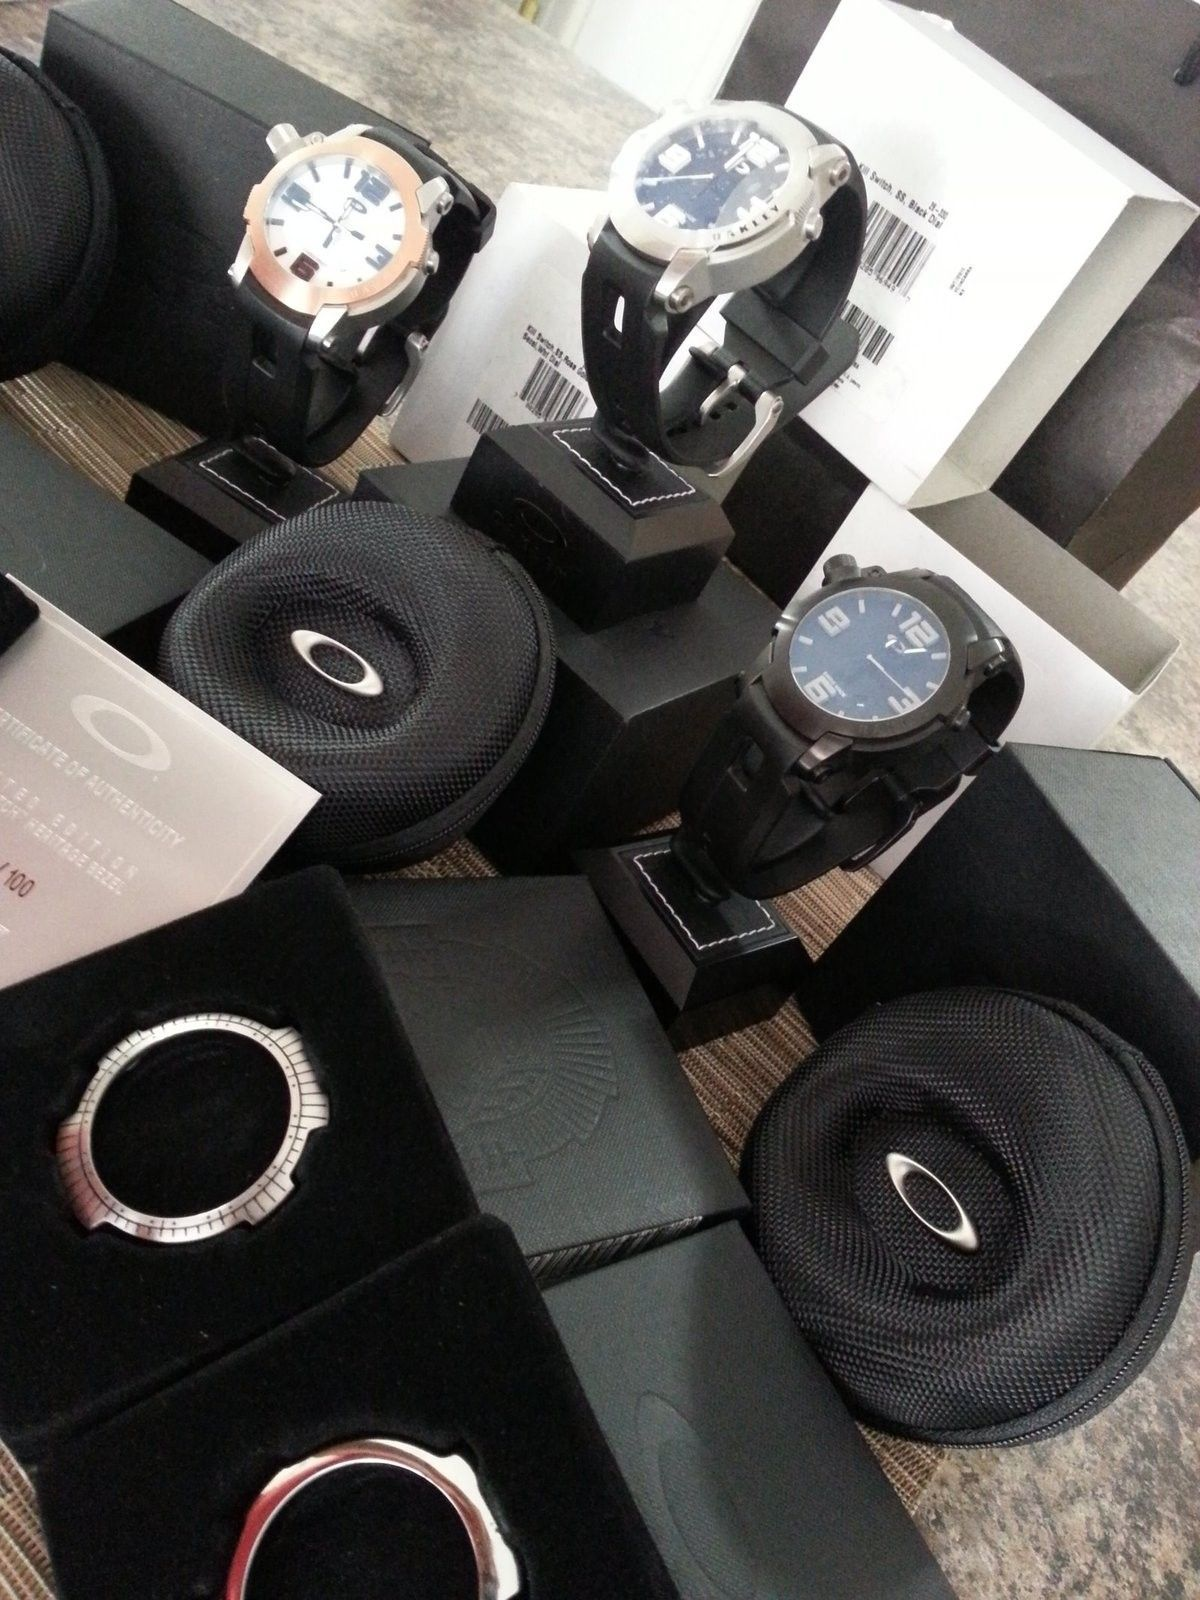 Kill Switch Collection - Watches & Bezels - s1.jpg